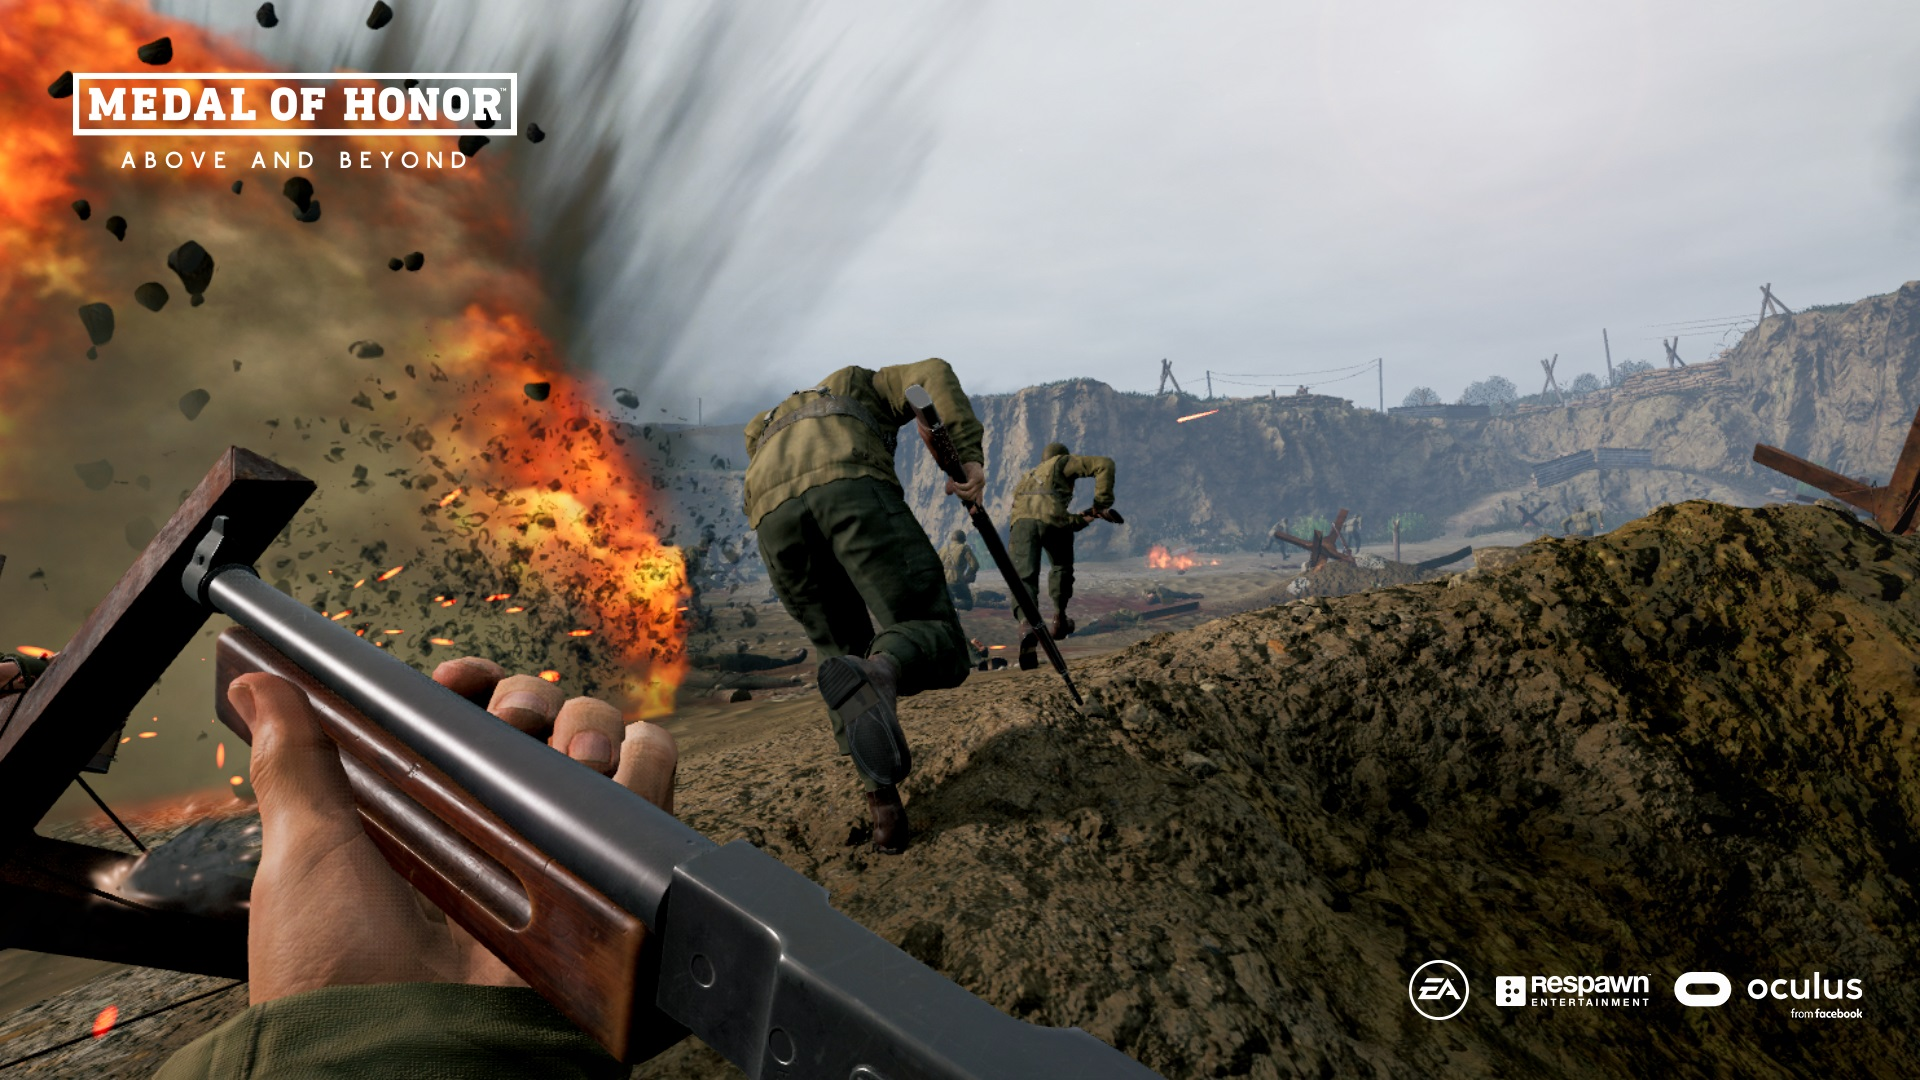 Respawn's Medal of Honor VR game actually looks pretty damn cool screenshot